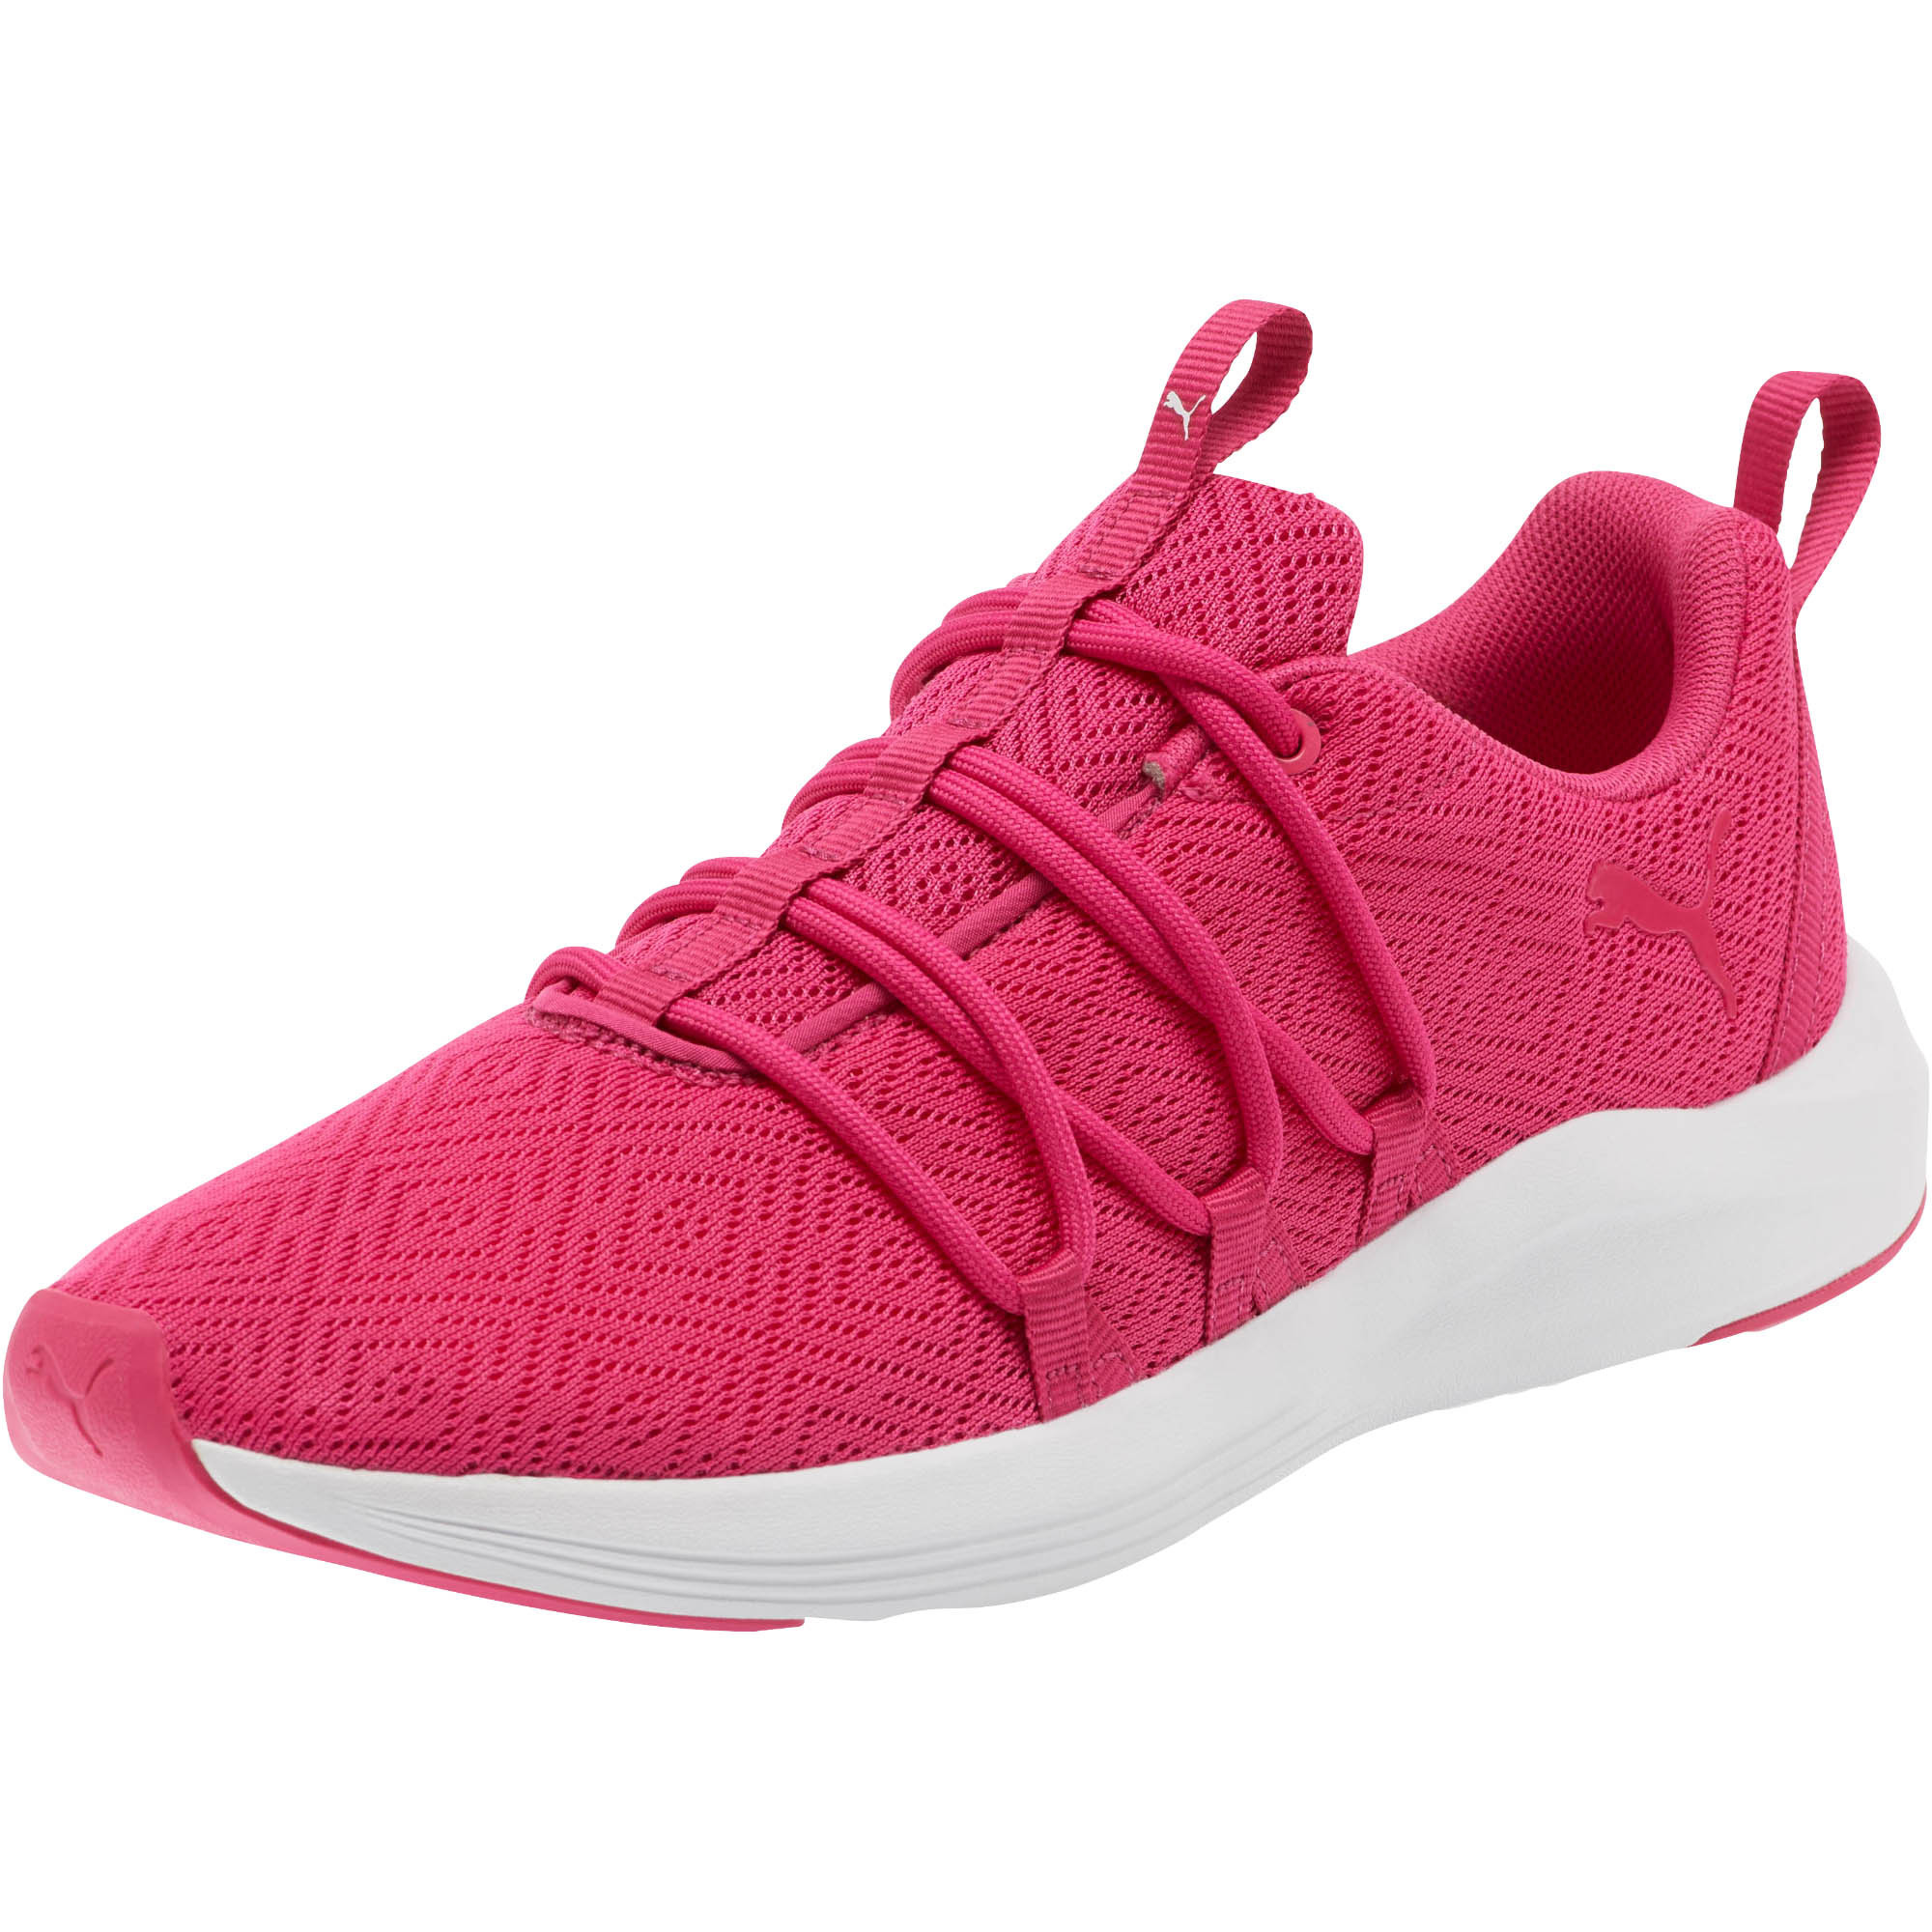 PUMA-Prowl-Alt-Stellar-Women-s-Training-Shoes-Women-Shoe-Training thumbnail 14